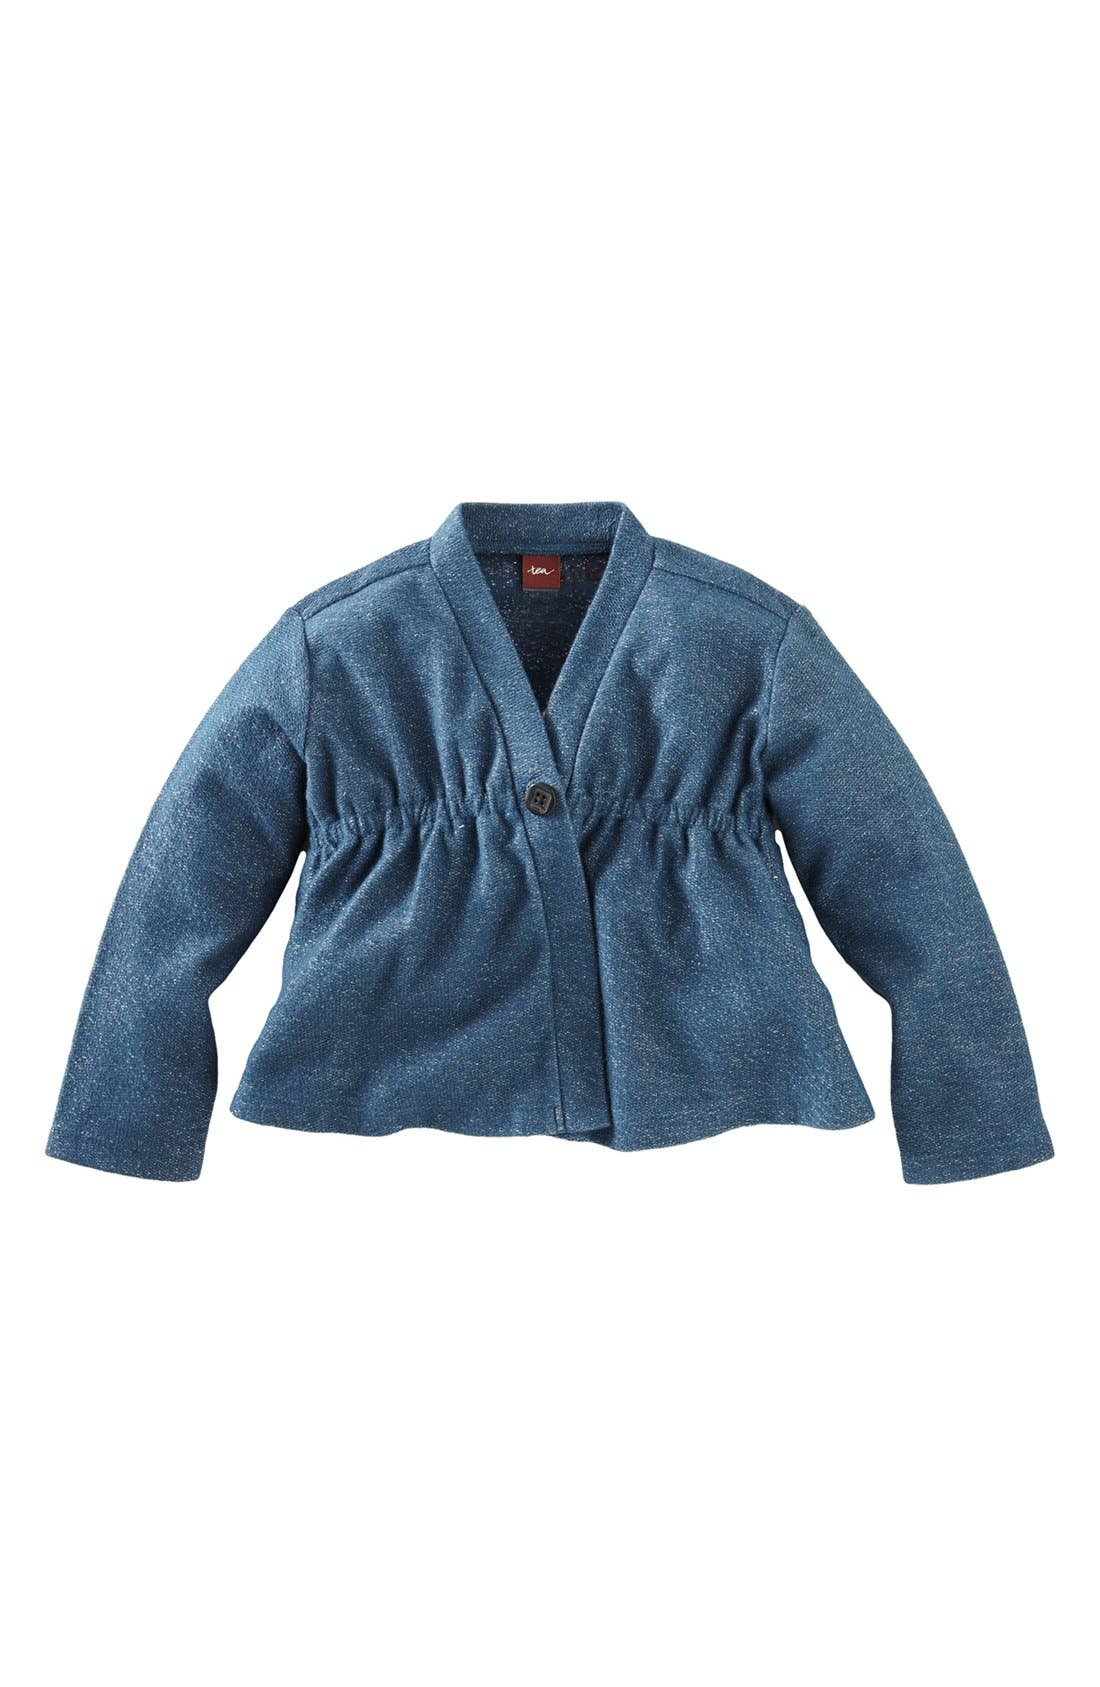 Main Image - Tea Collection Sparkly French Terry Jacket (Little Girls & Big Girls)